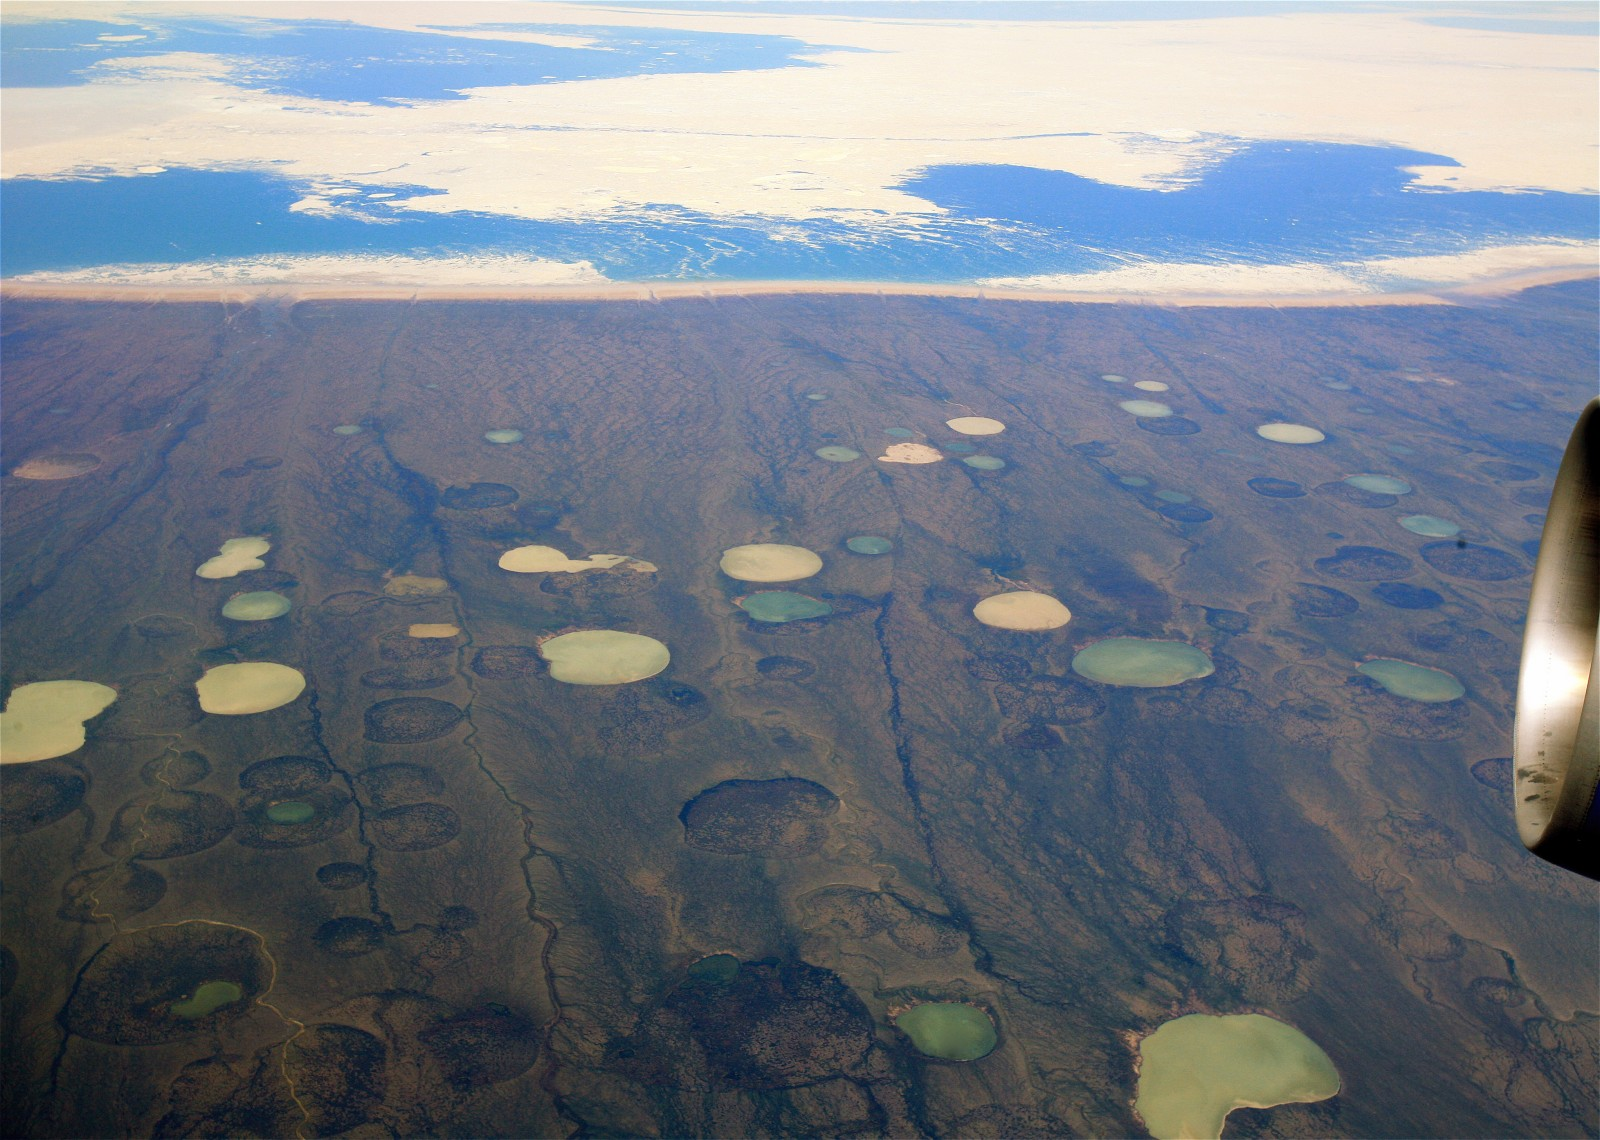 Figure 2: Permafrost thaw ponds in Hudson Bay Canada (taken from Wikimedia )